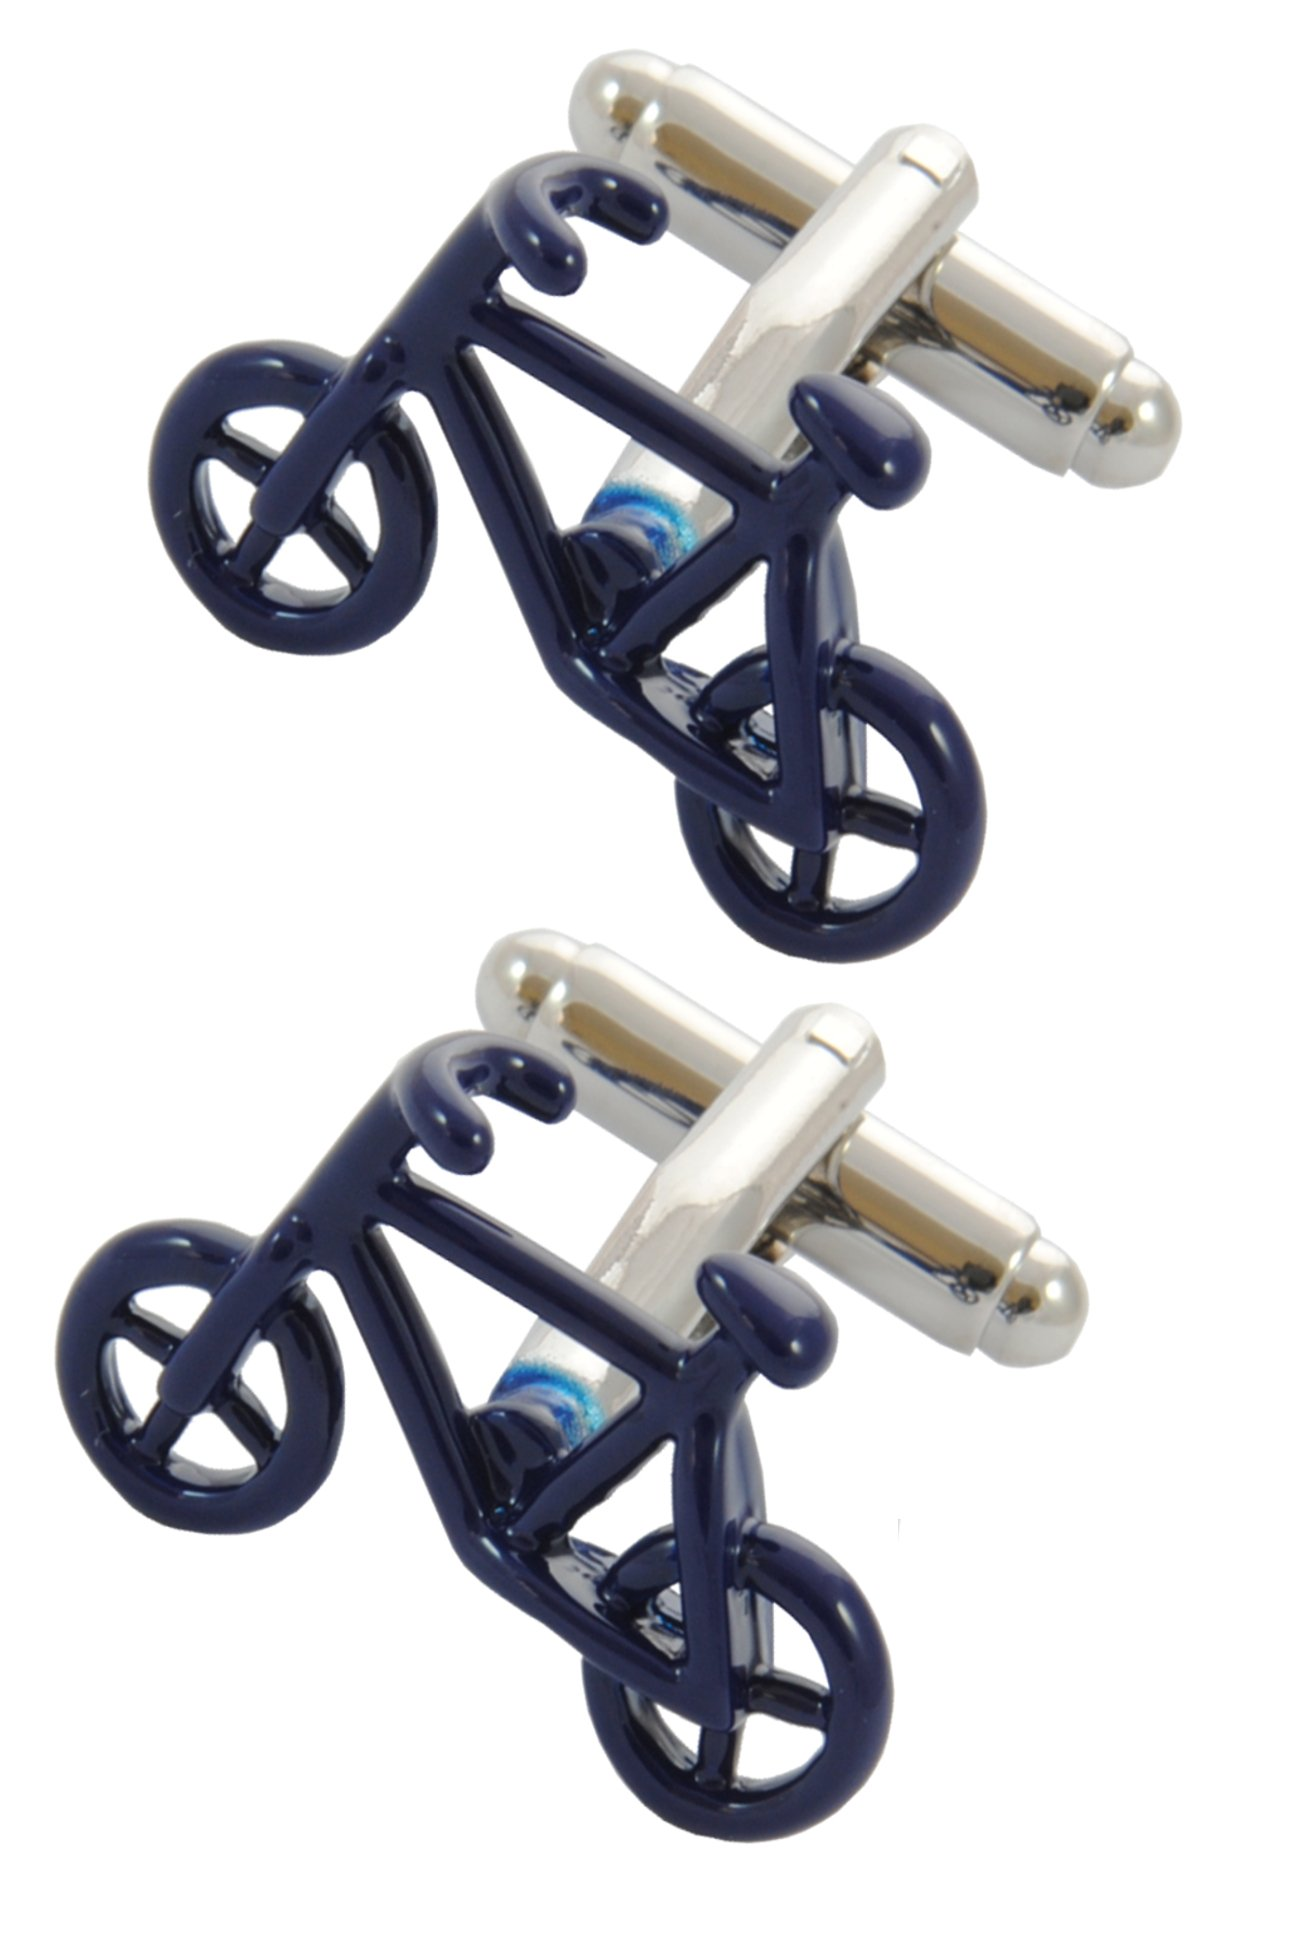 COLLAR AND CUFFS LONDON - Premium Cufflinks with Gift Box - Bicycle - Blue Colour - Cycling - Pedal Bike - Cycle